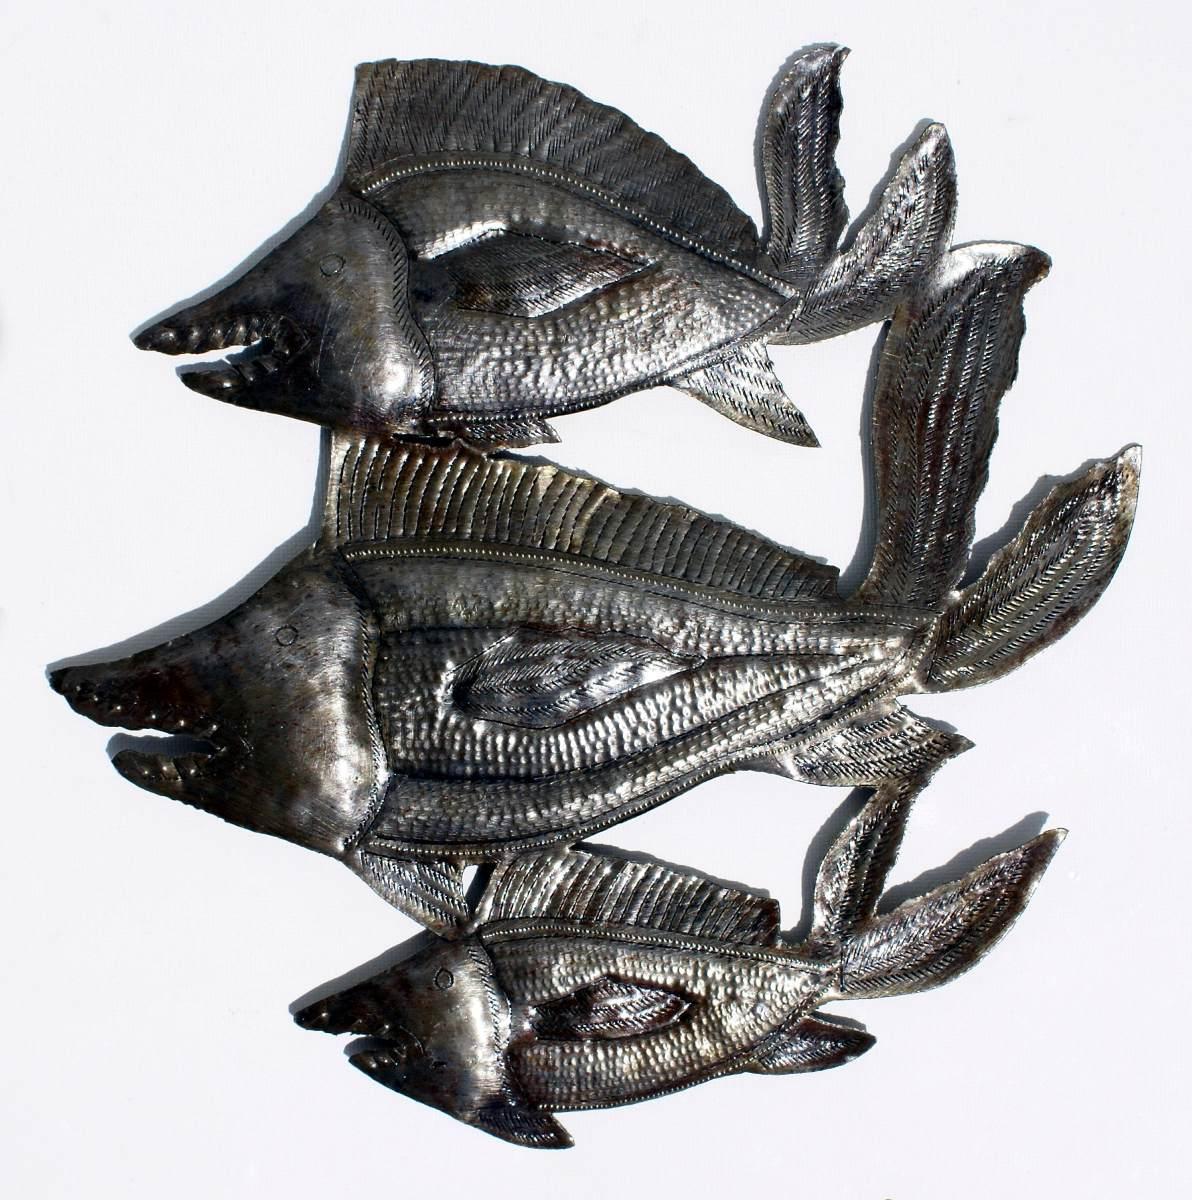 Tres peces decoracion de pared de metal hecho a mano 35cm for Adornos pared metal